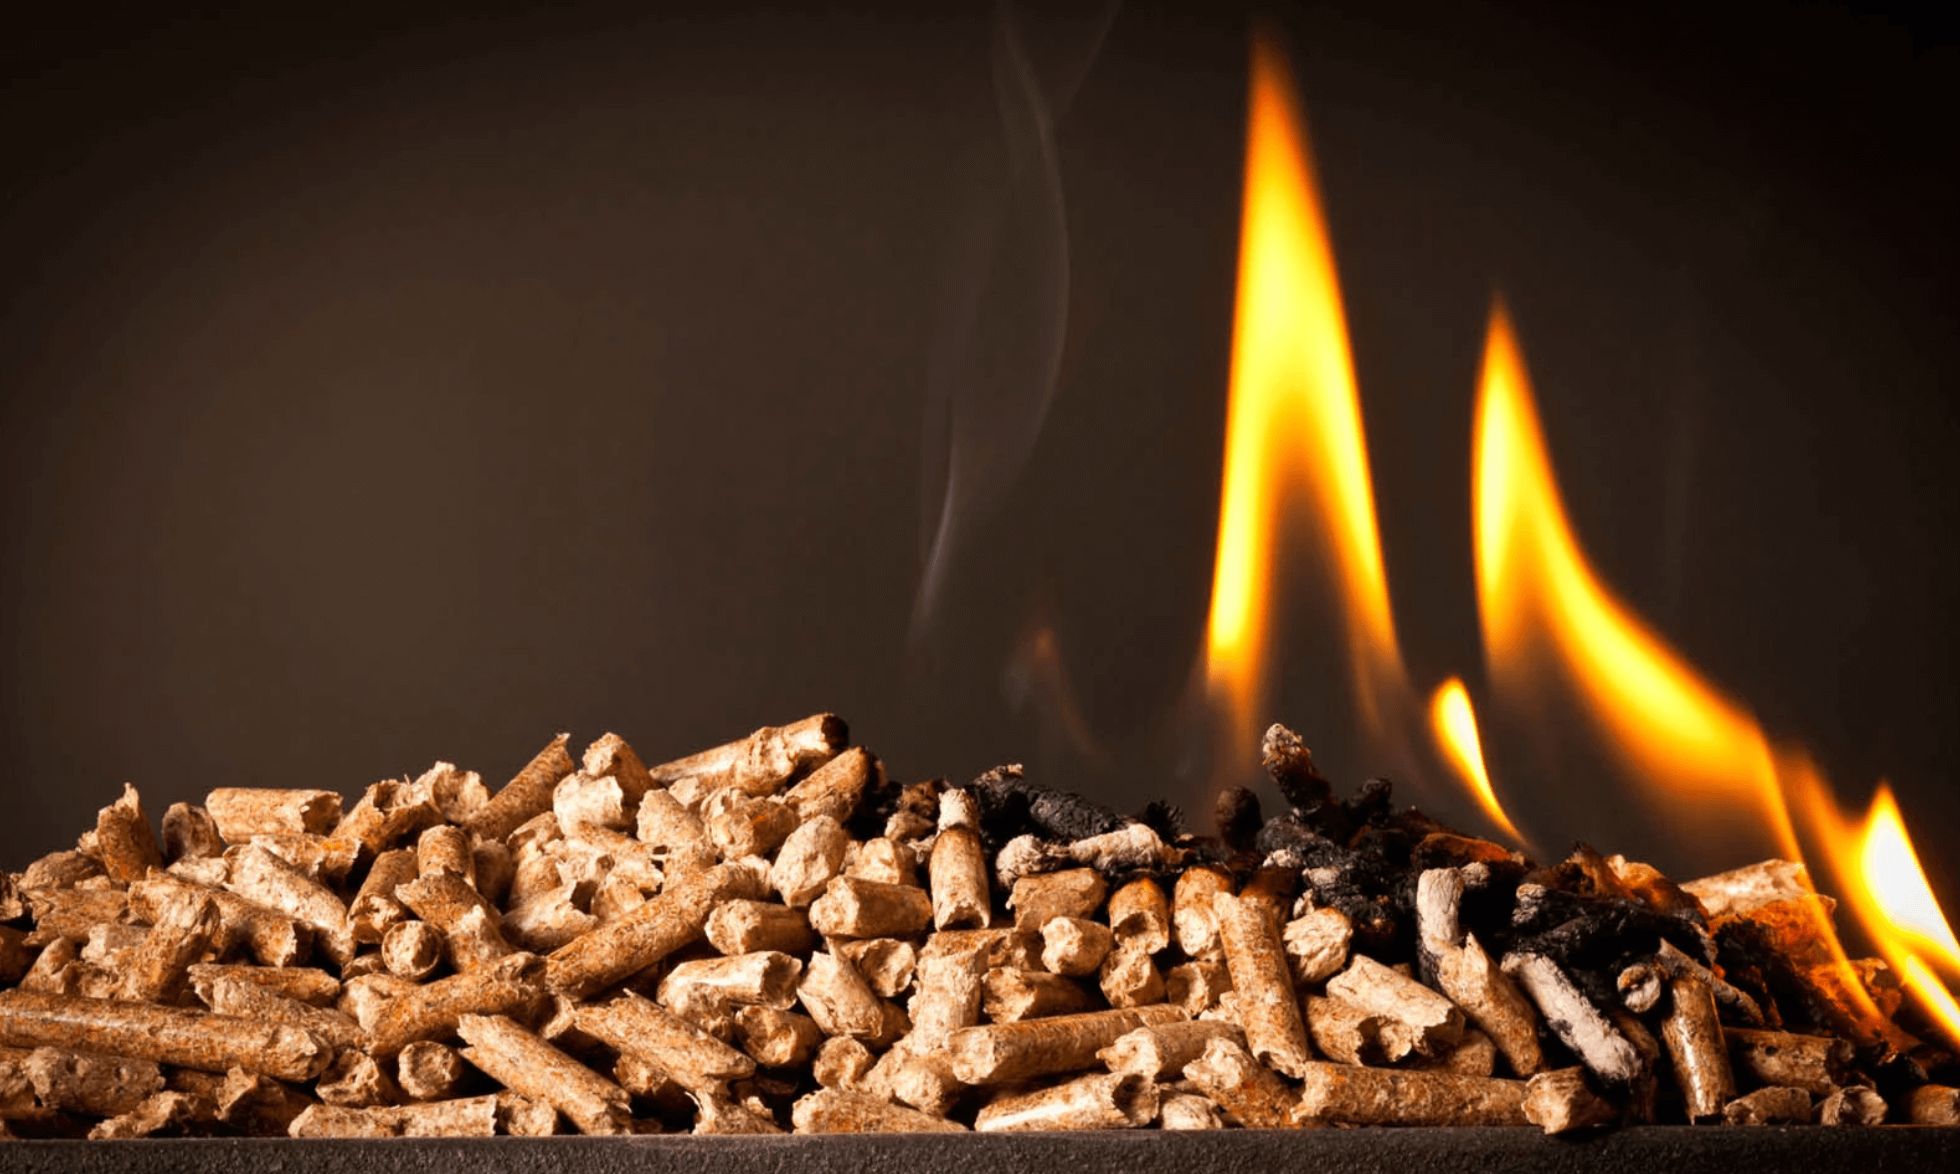 How To Use Wood Pellets In A Charcoal Grill Step By Step Guide Tips Own The Grill